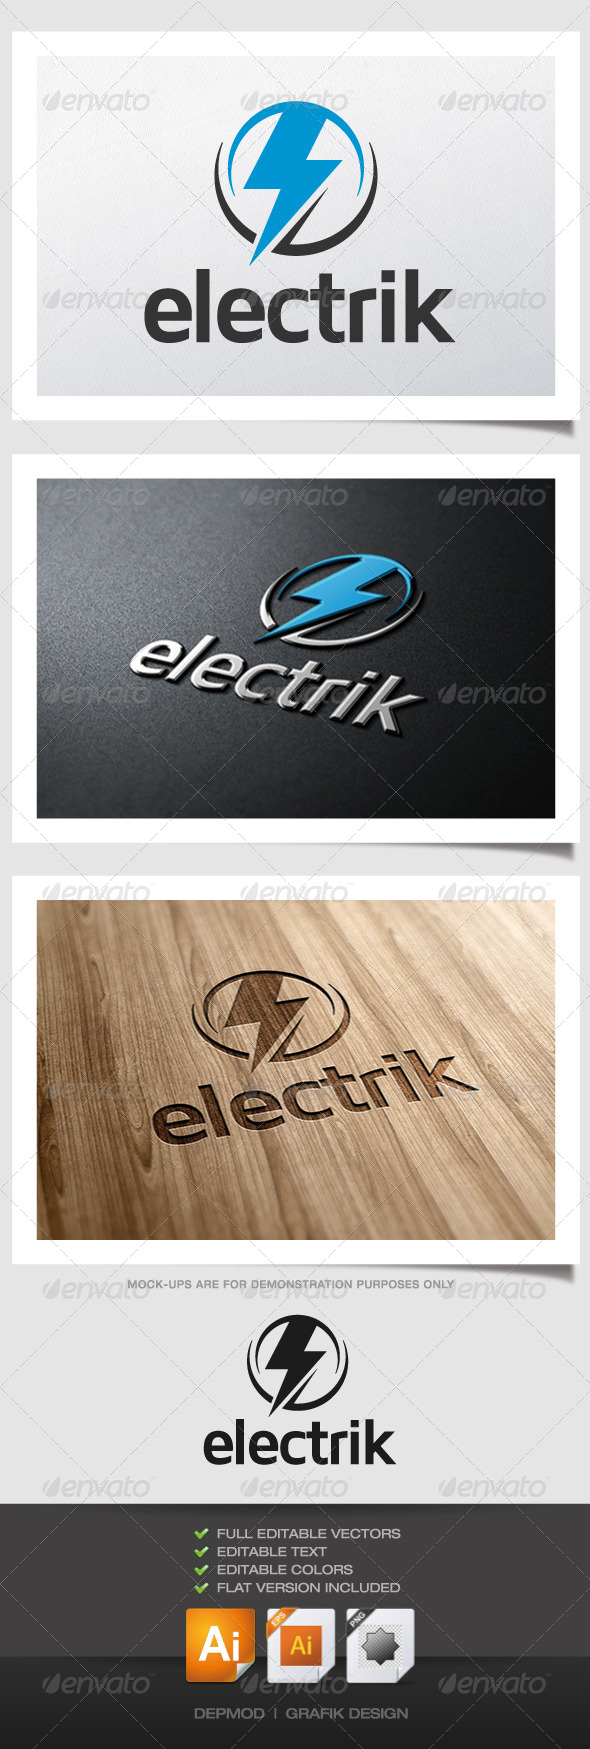 GraphicRiver Electrik Logo 5053113